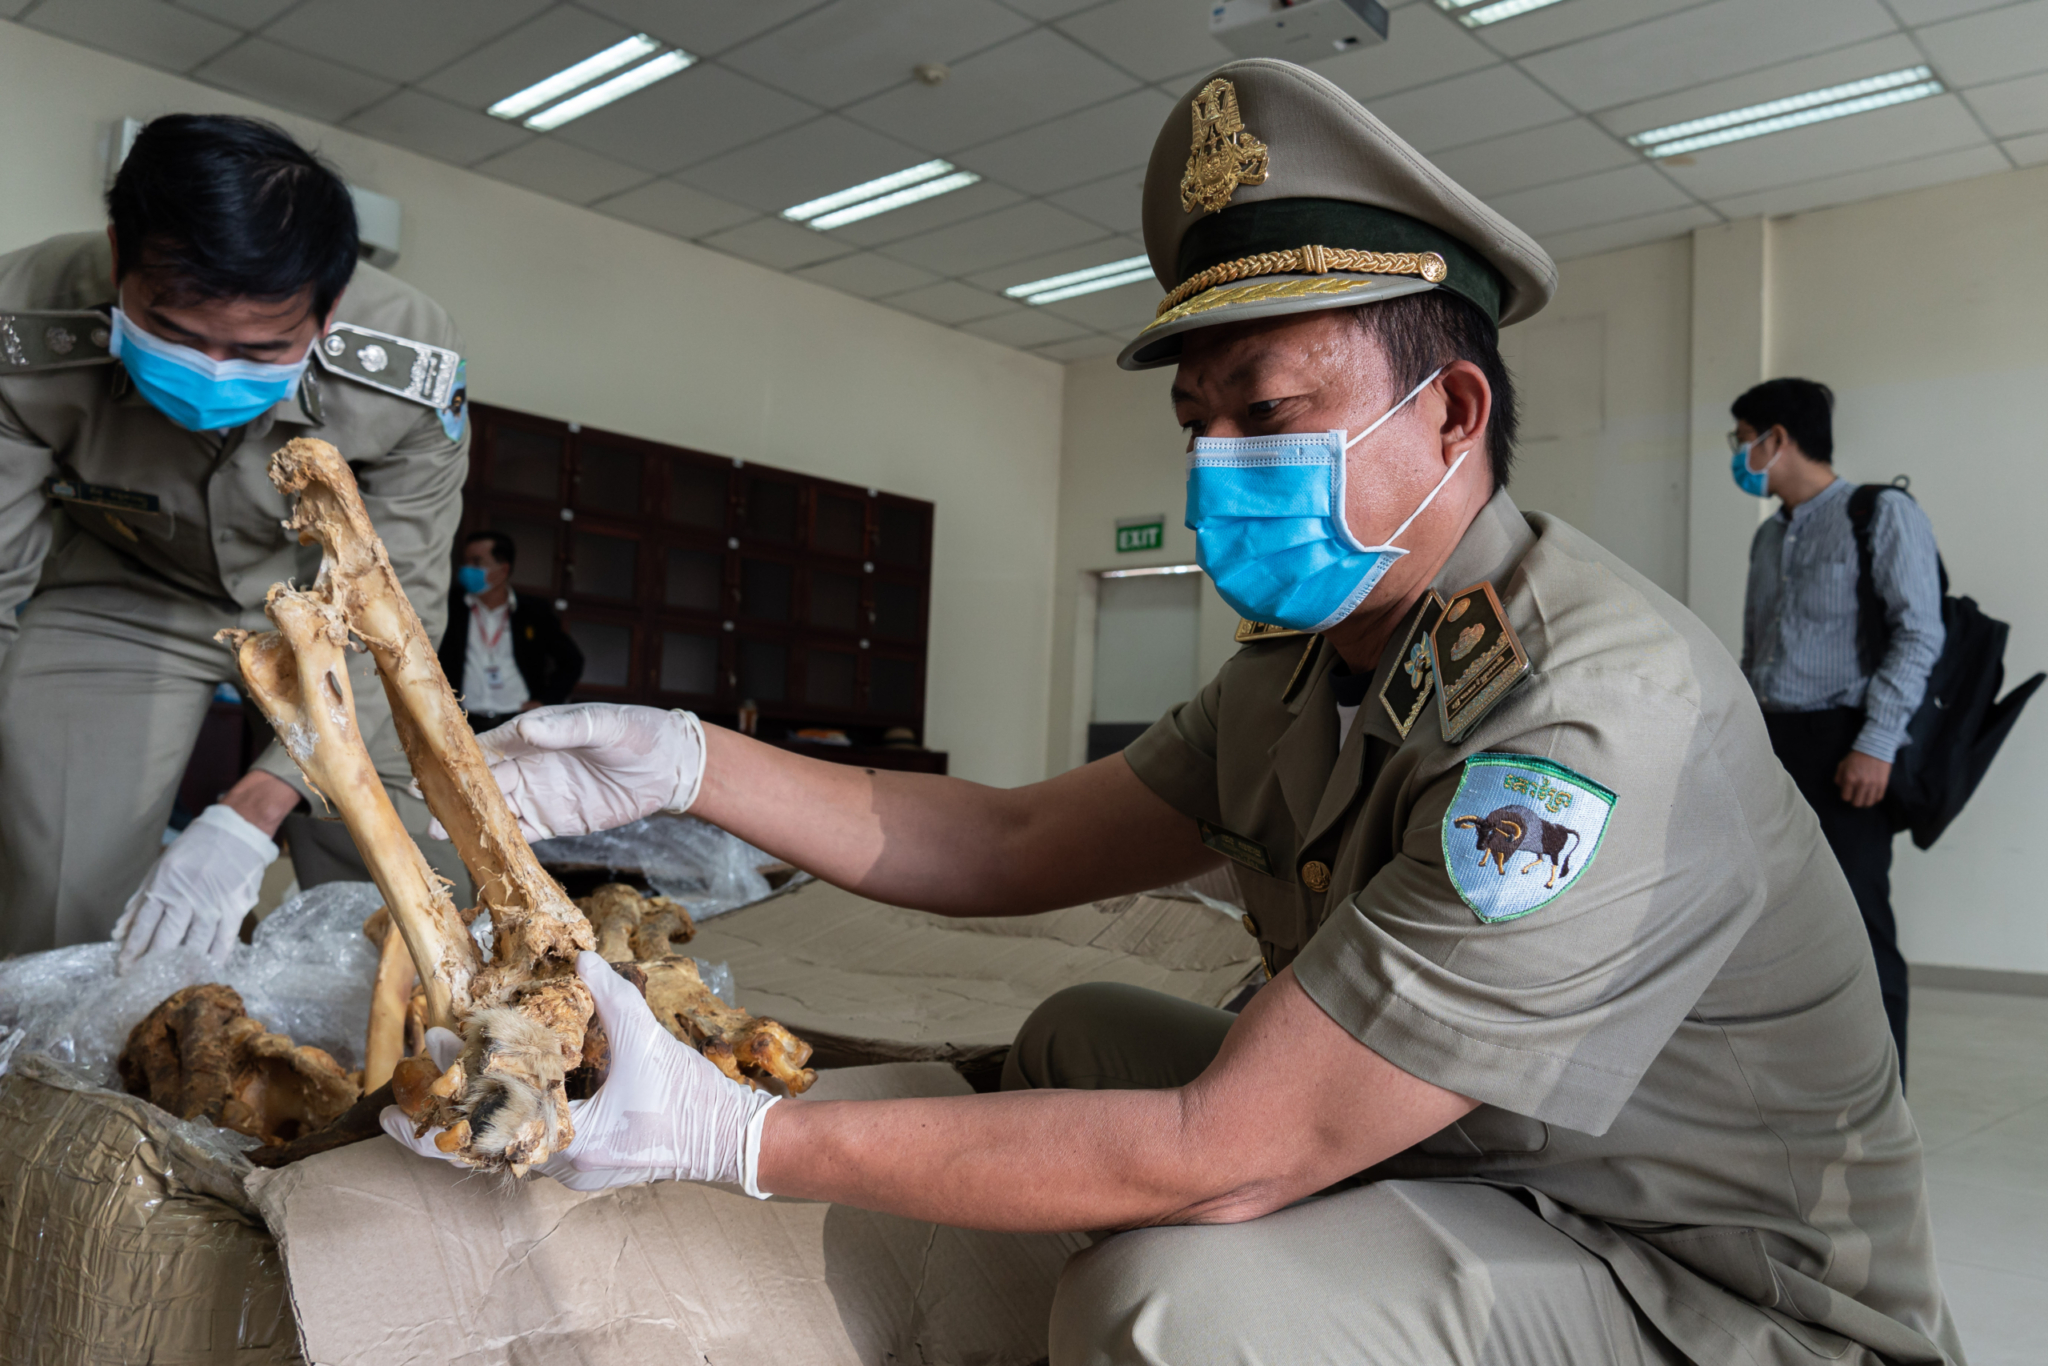 Major shipment of suspected lion bones opened